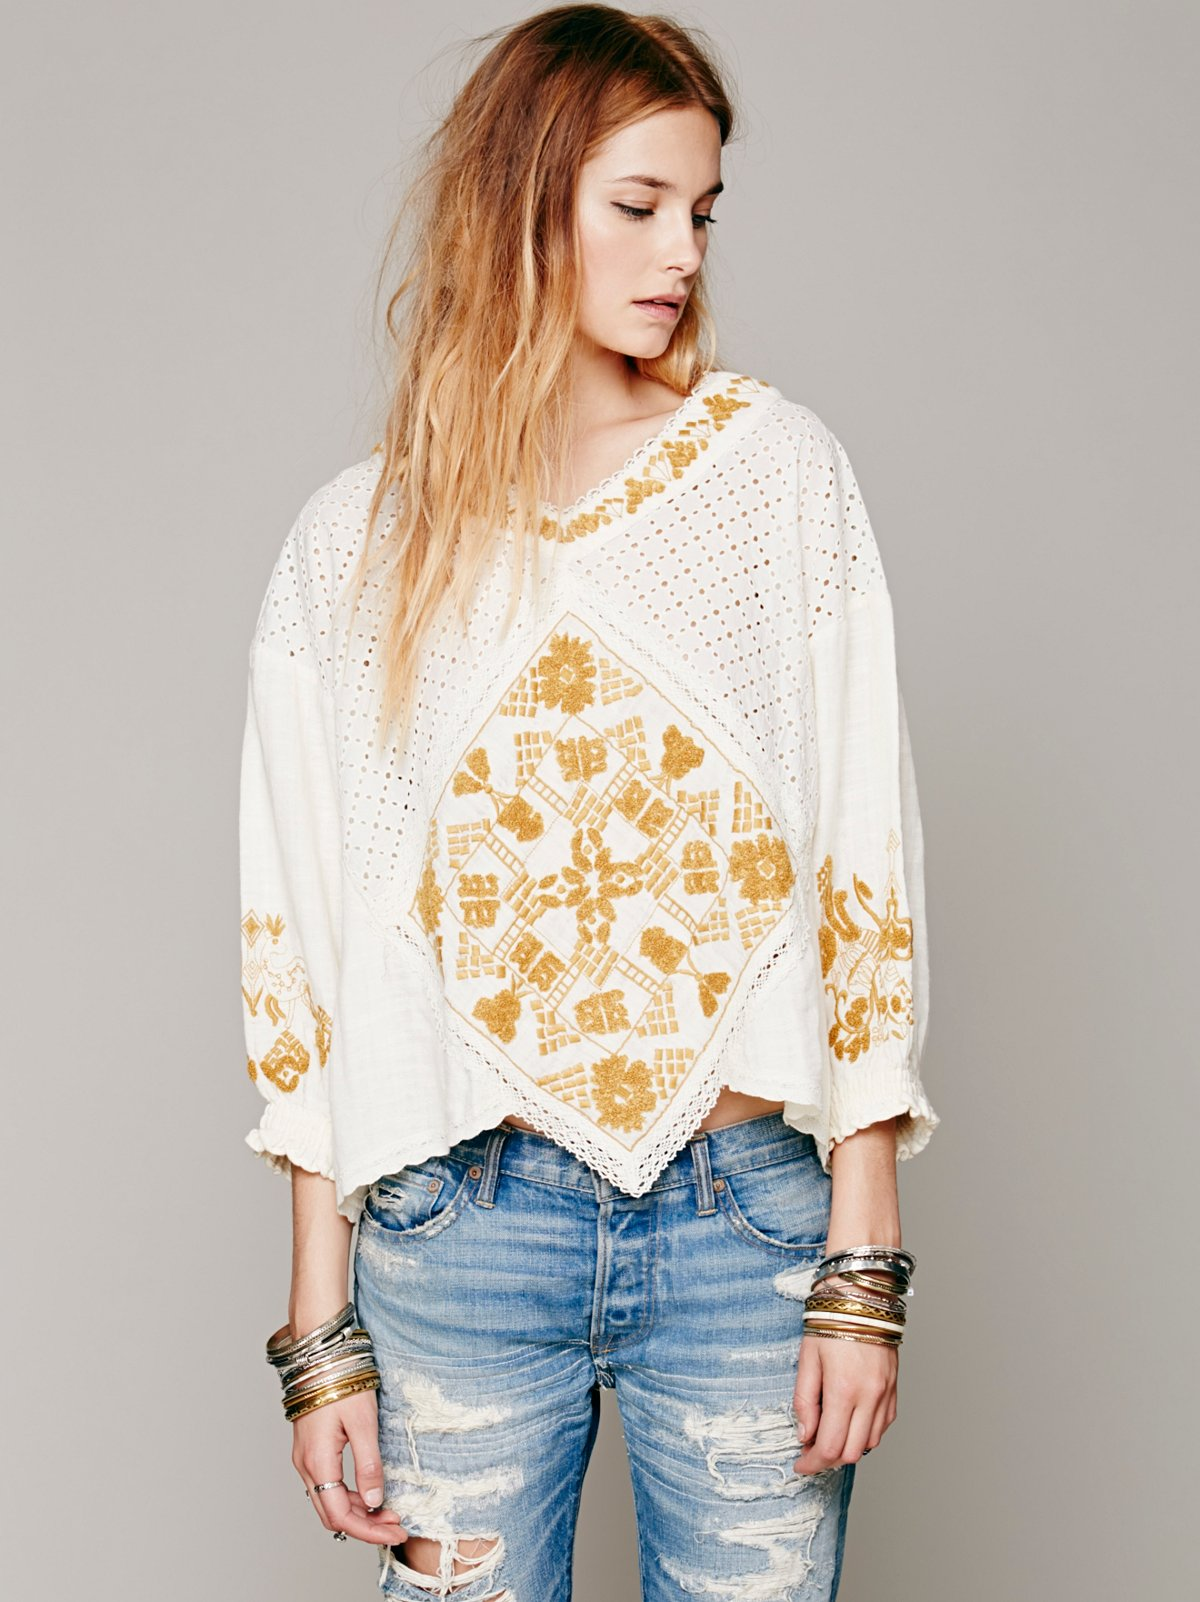 FP New Romantics Crochet Inset Top